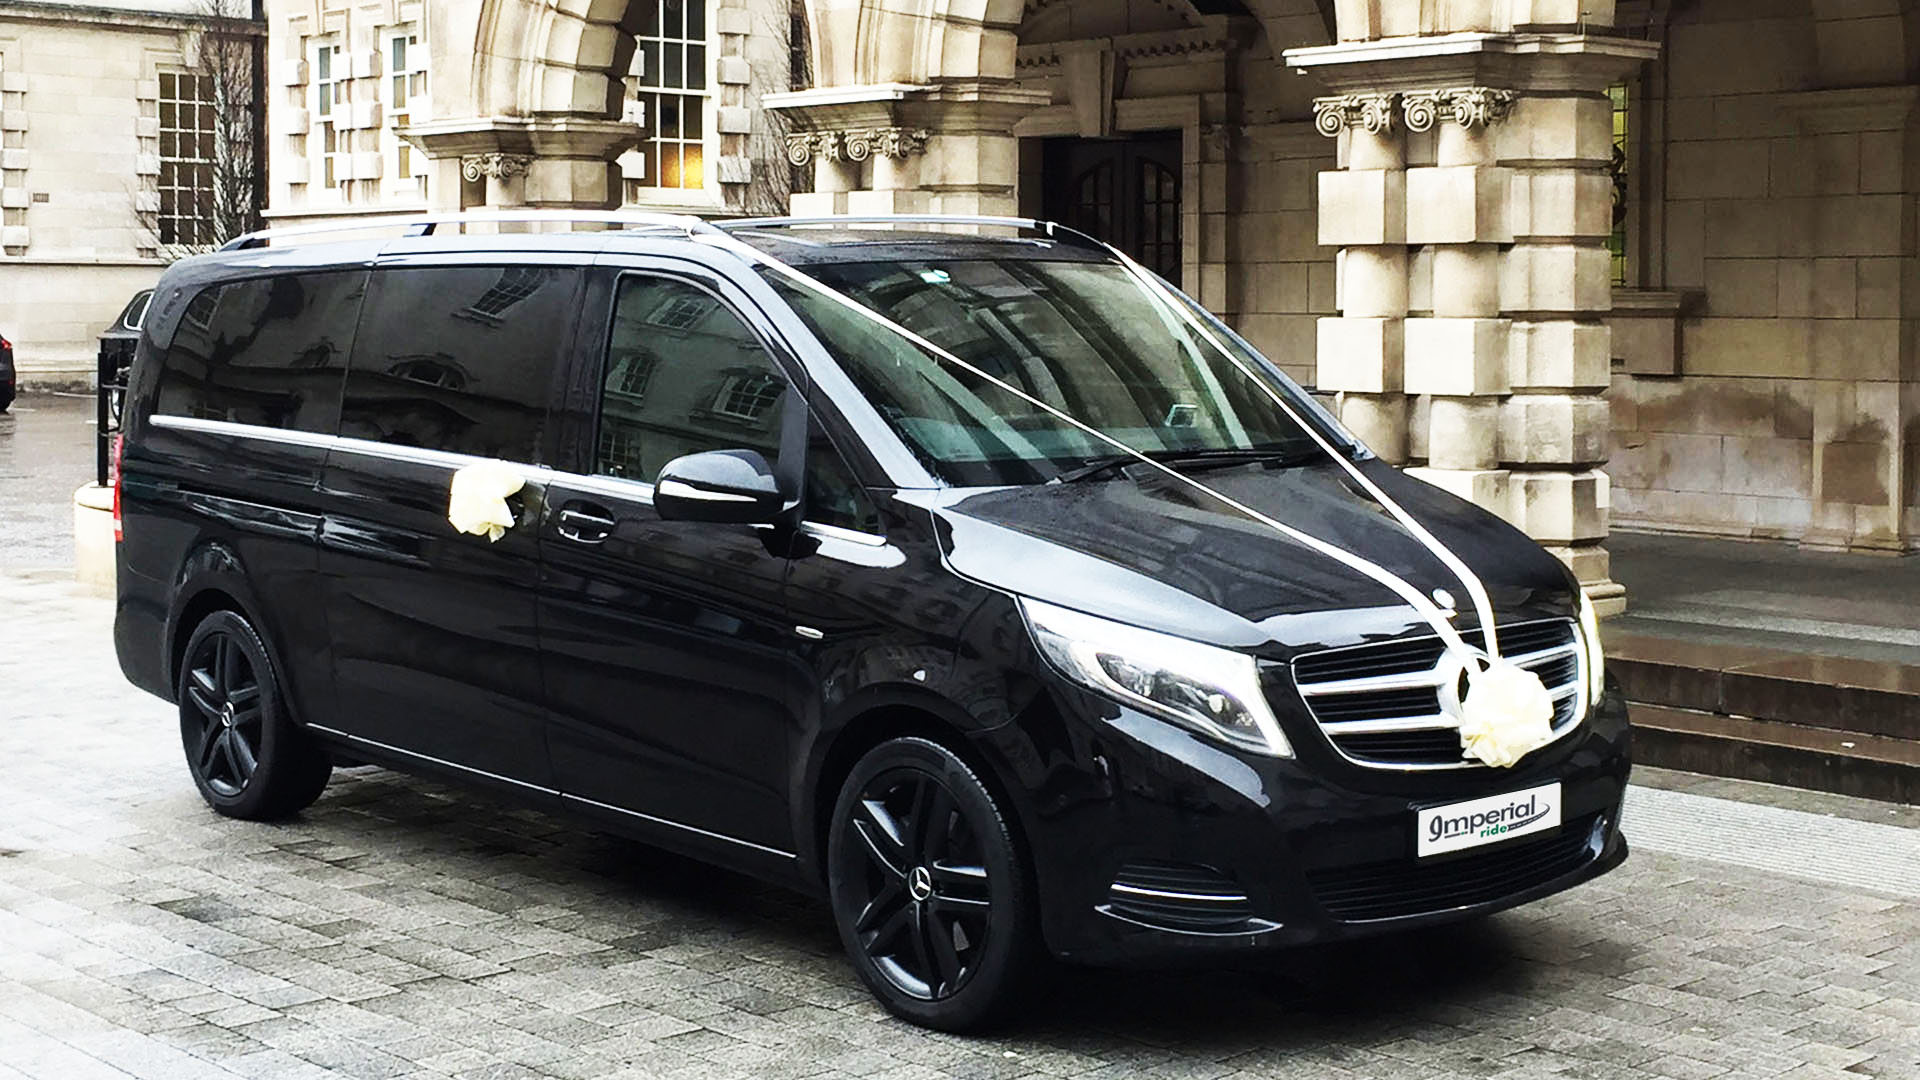 v-class-wedding-hire-in-haringey